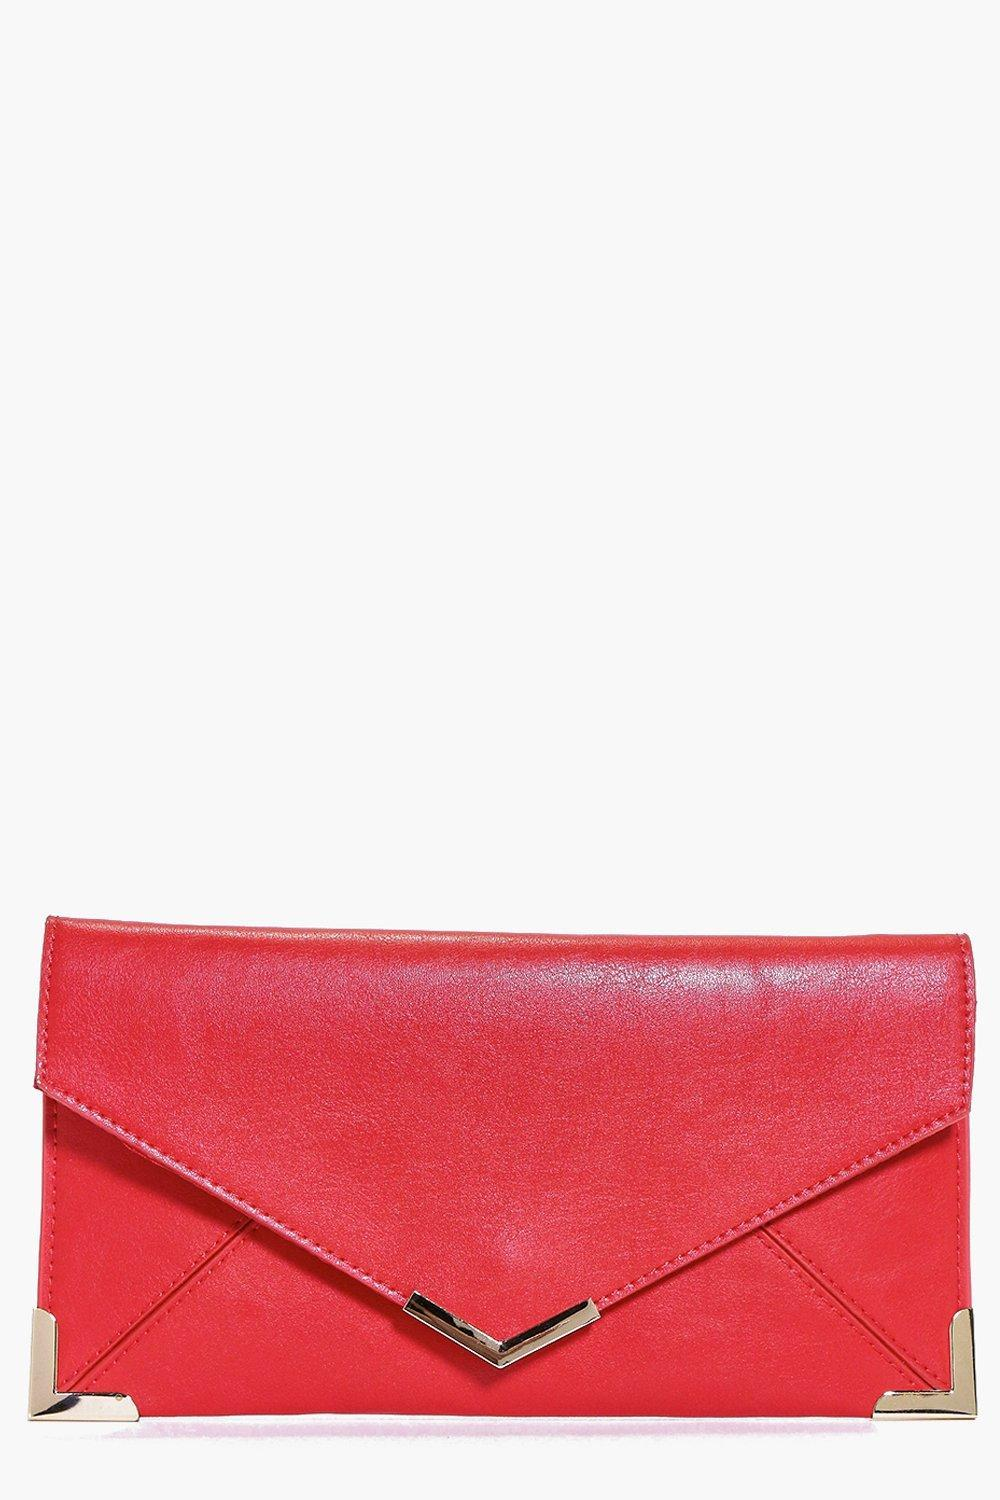 Metal Trim Envelope Clutch Red - predominant colour: true red; secondary colour: gold; occasions: evening, occasion; type of pattern: standard; style: clutch; length: hand carry; size: standard; material: faux leather; pattern: plain; finish: plain; season: a/w 2016; wardrobe: event